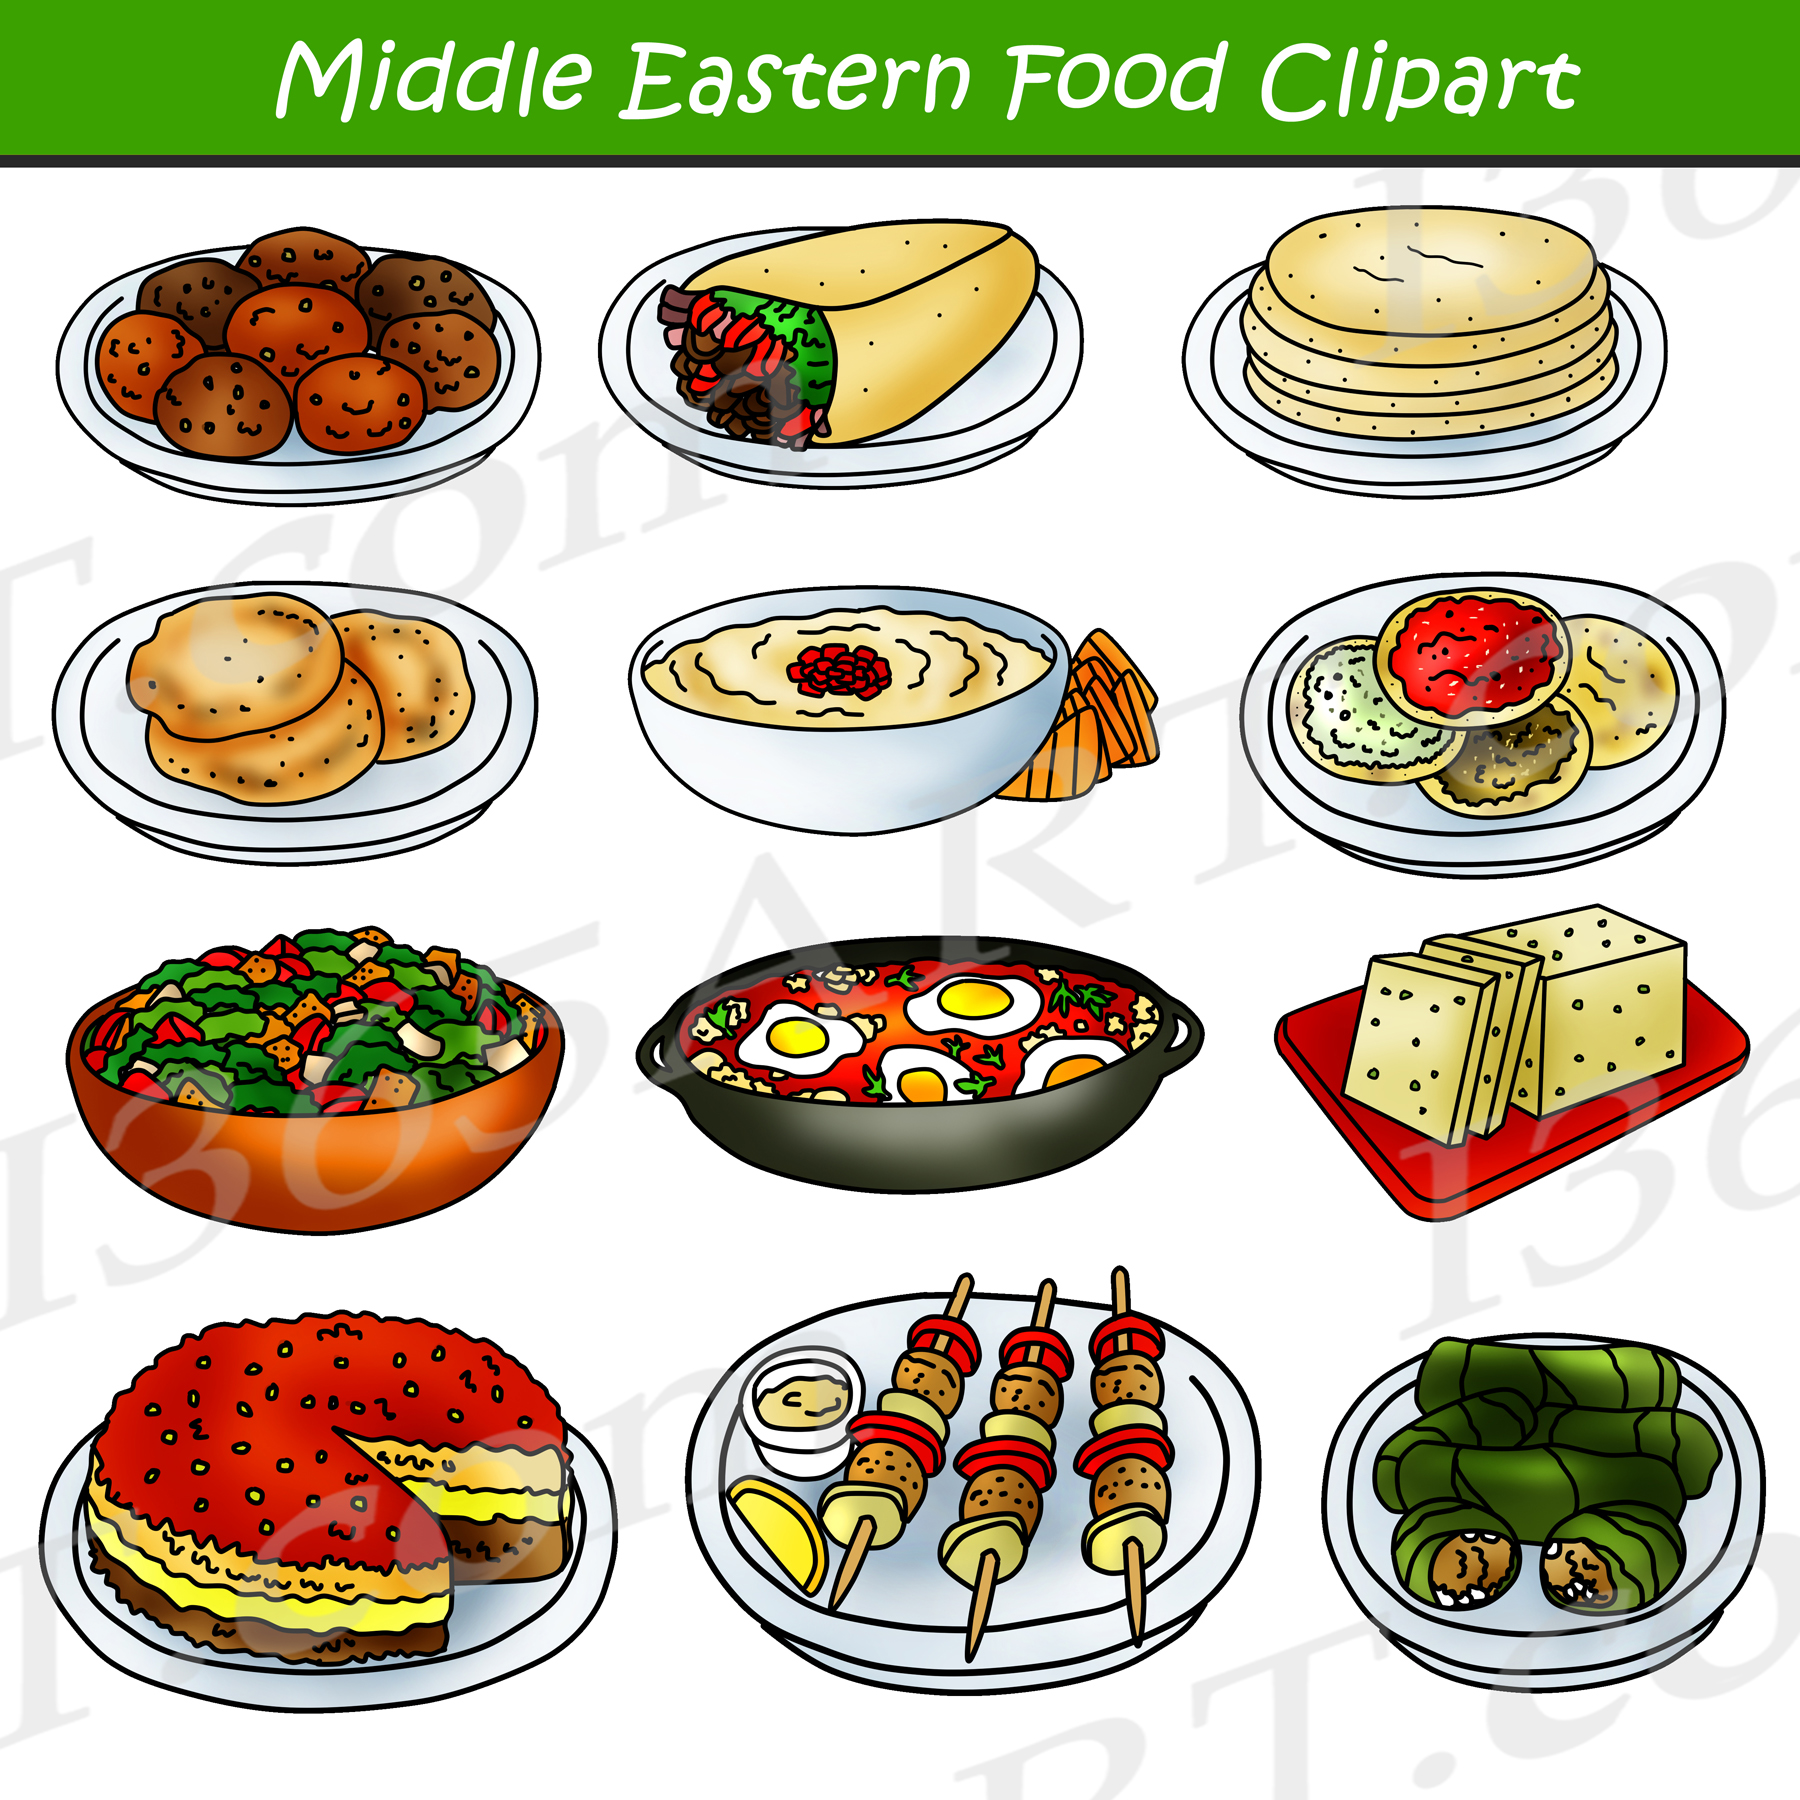 Vegetarian food images clipart clipart black and white download Middle Eastern Food Clipart - Arabic Food Clip Art Graphics clipart black and white download